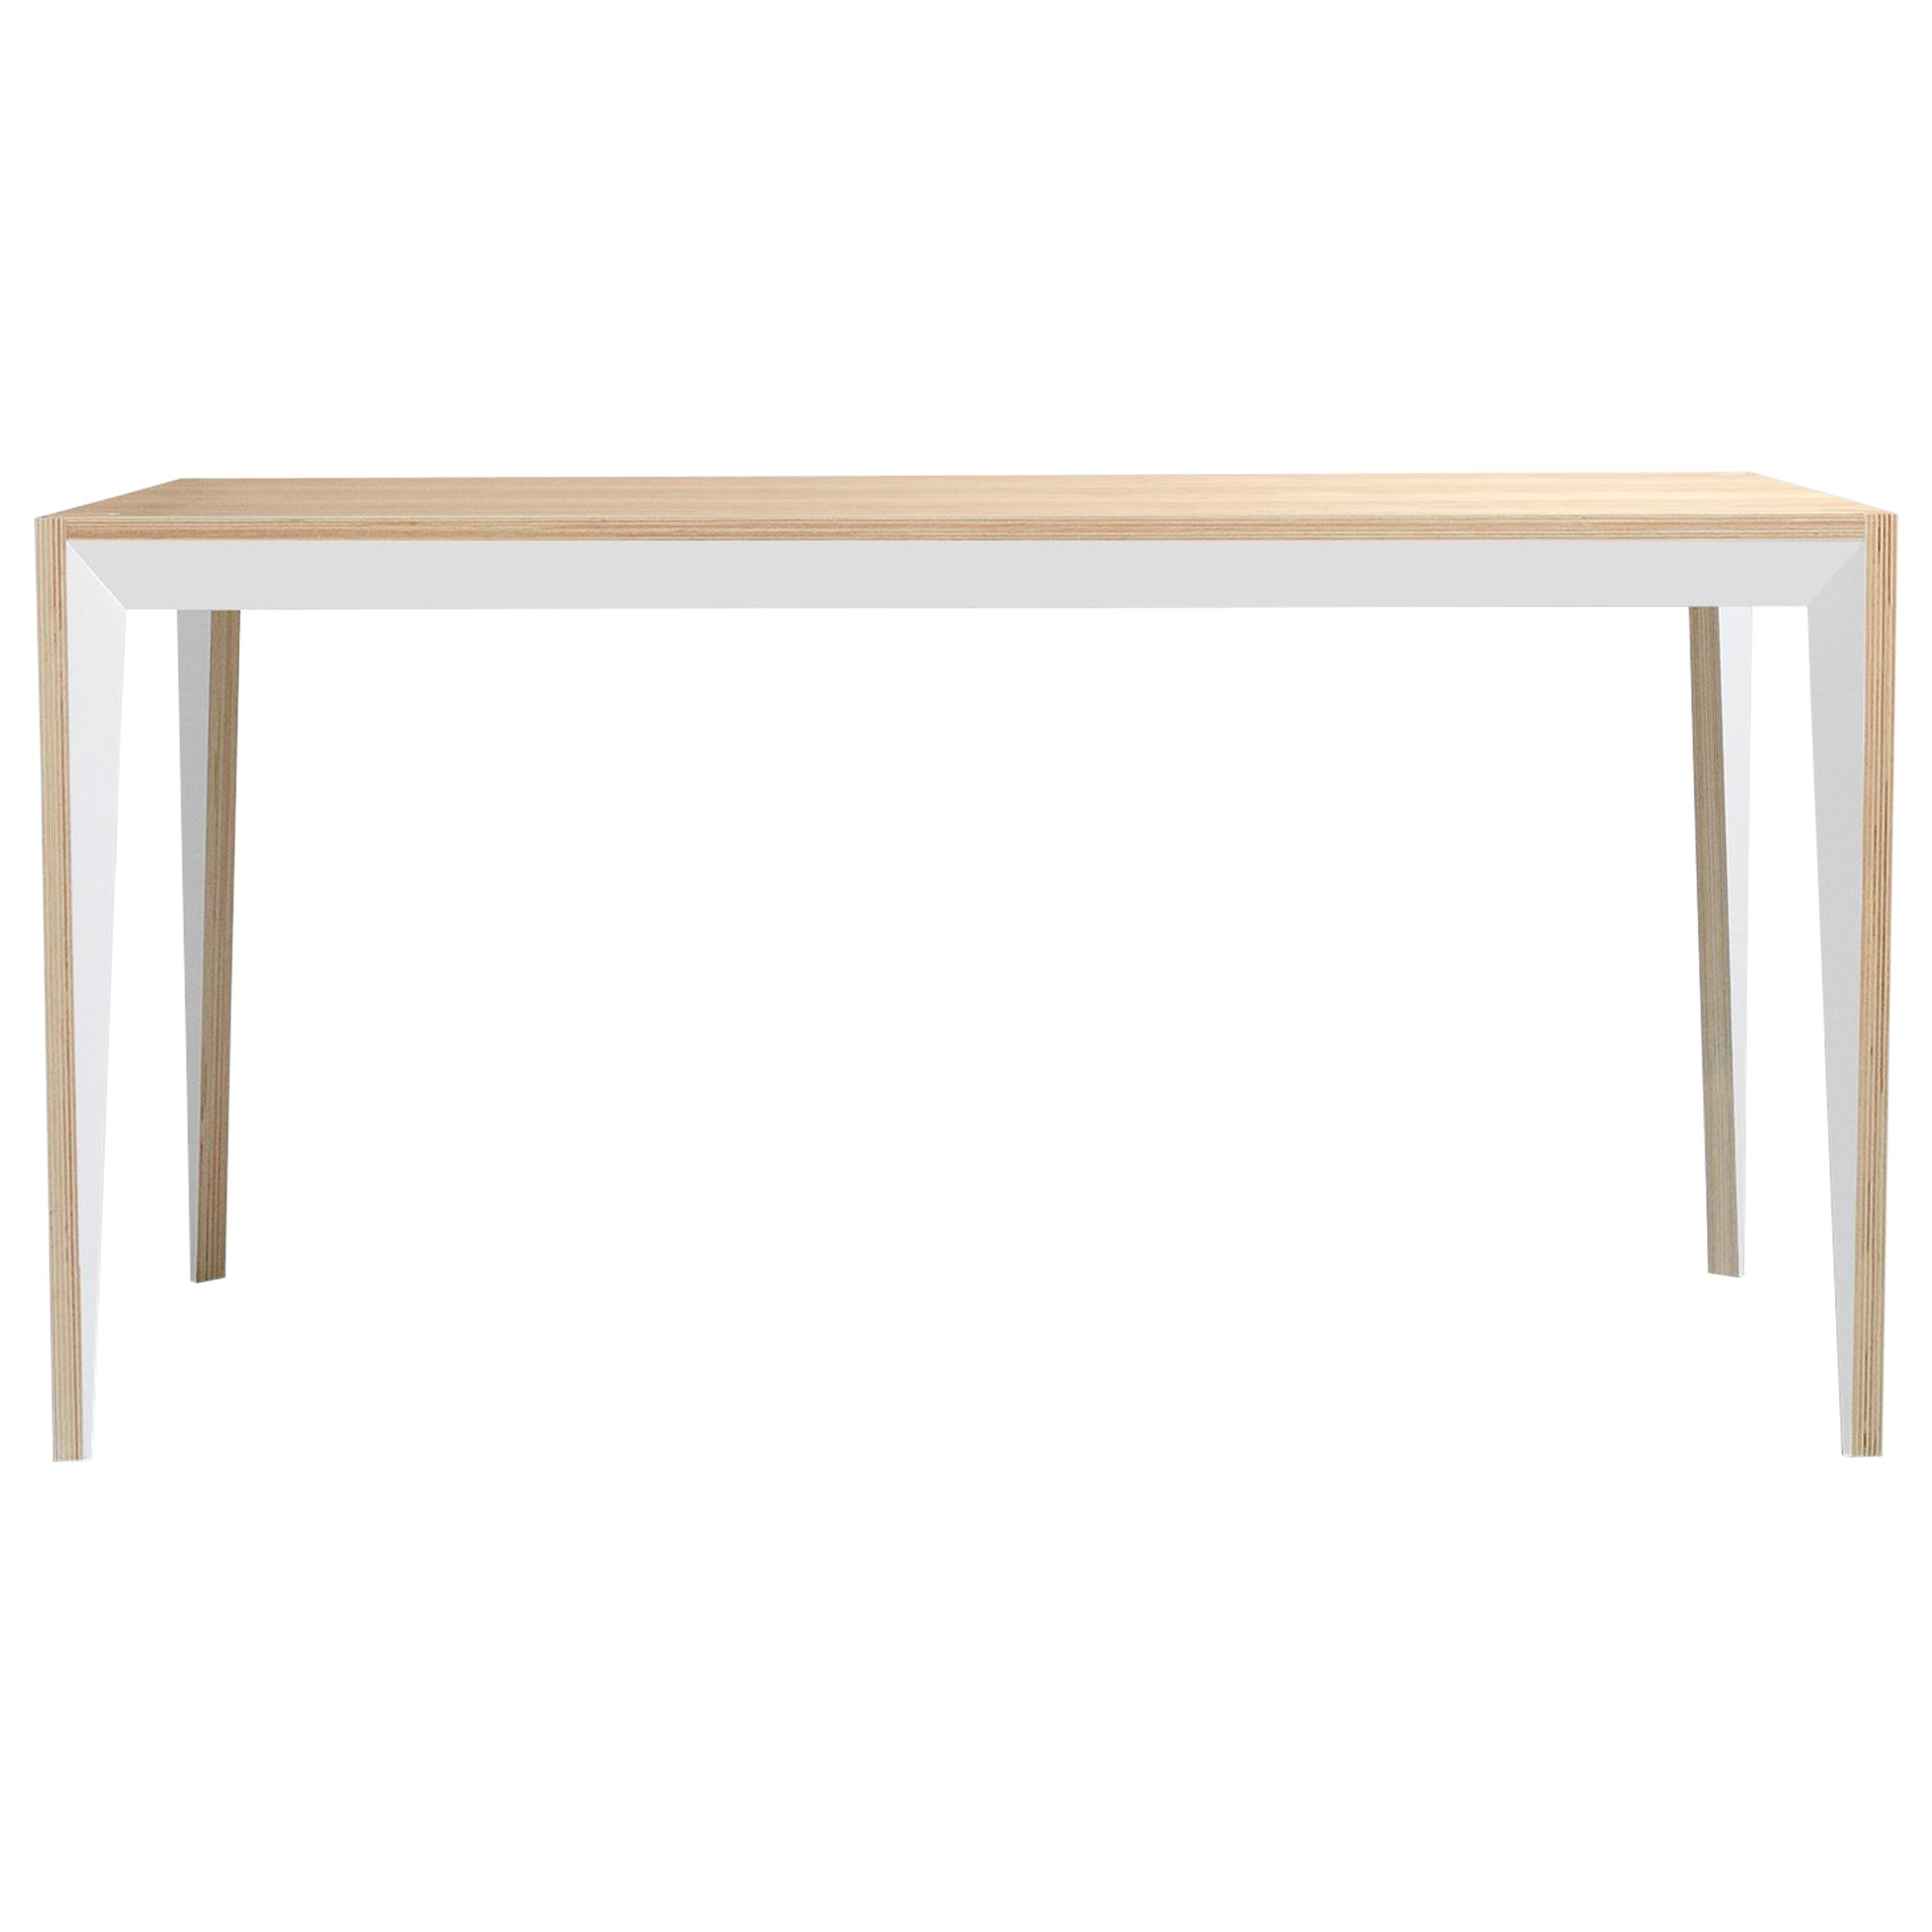 Oak Wood MiMi Desk White by Miduny, Made in Italy